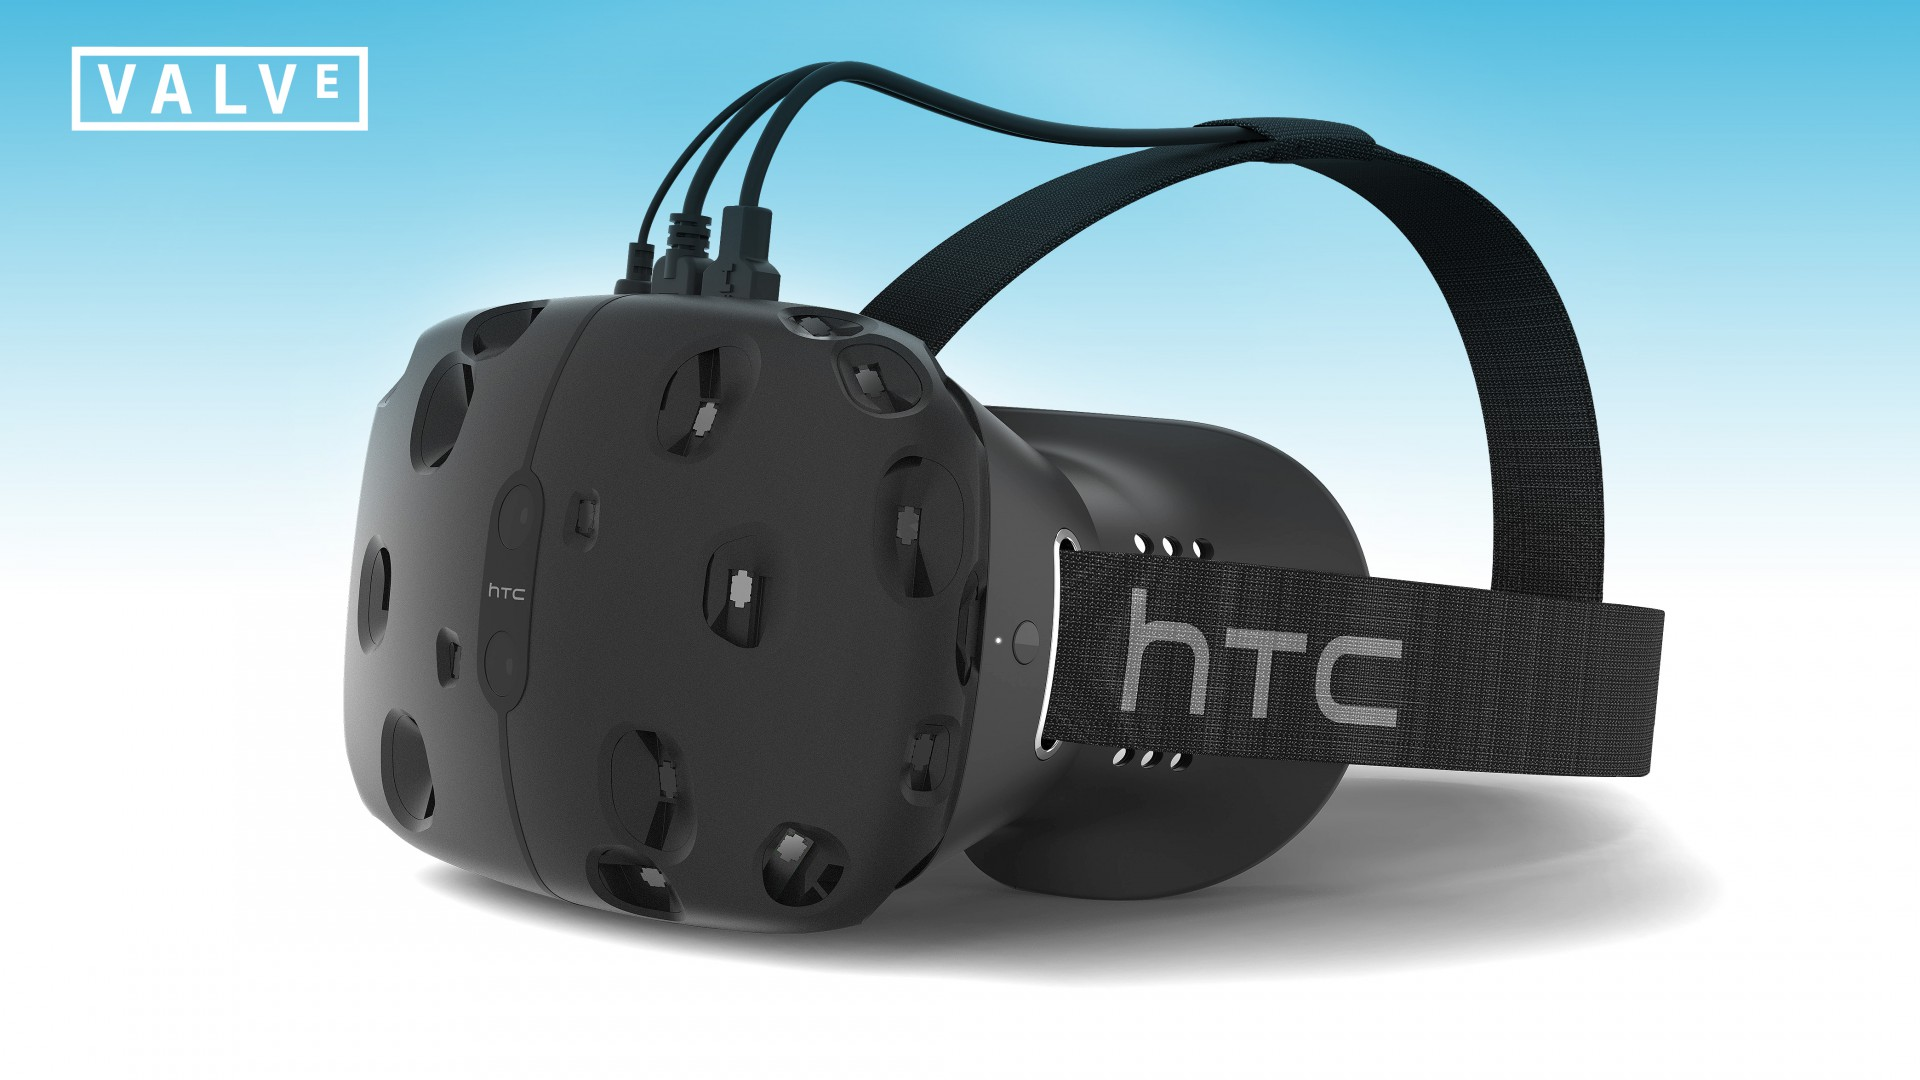 Vive, VR Headset, Valve, HTC, Hi-Tech News of 2015, Real Futuristic Gadgets, MVC 2015, review, test (horizontal)